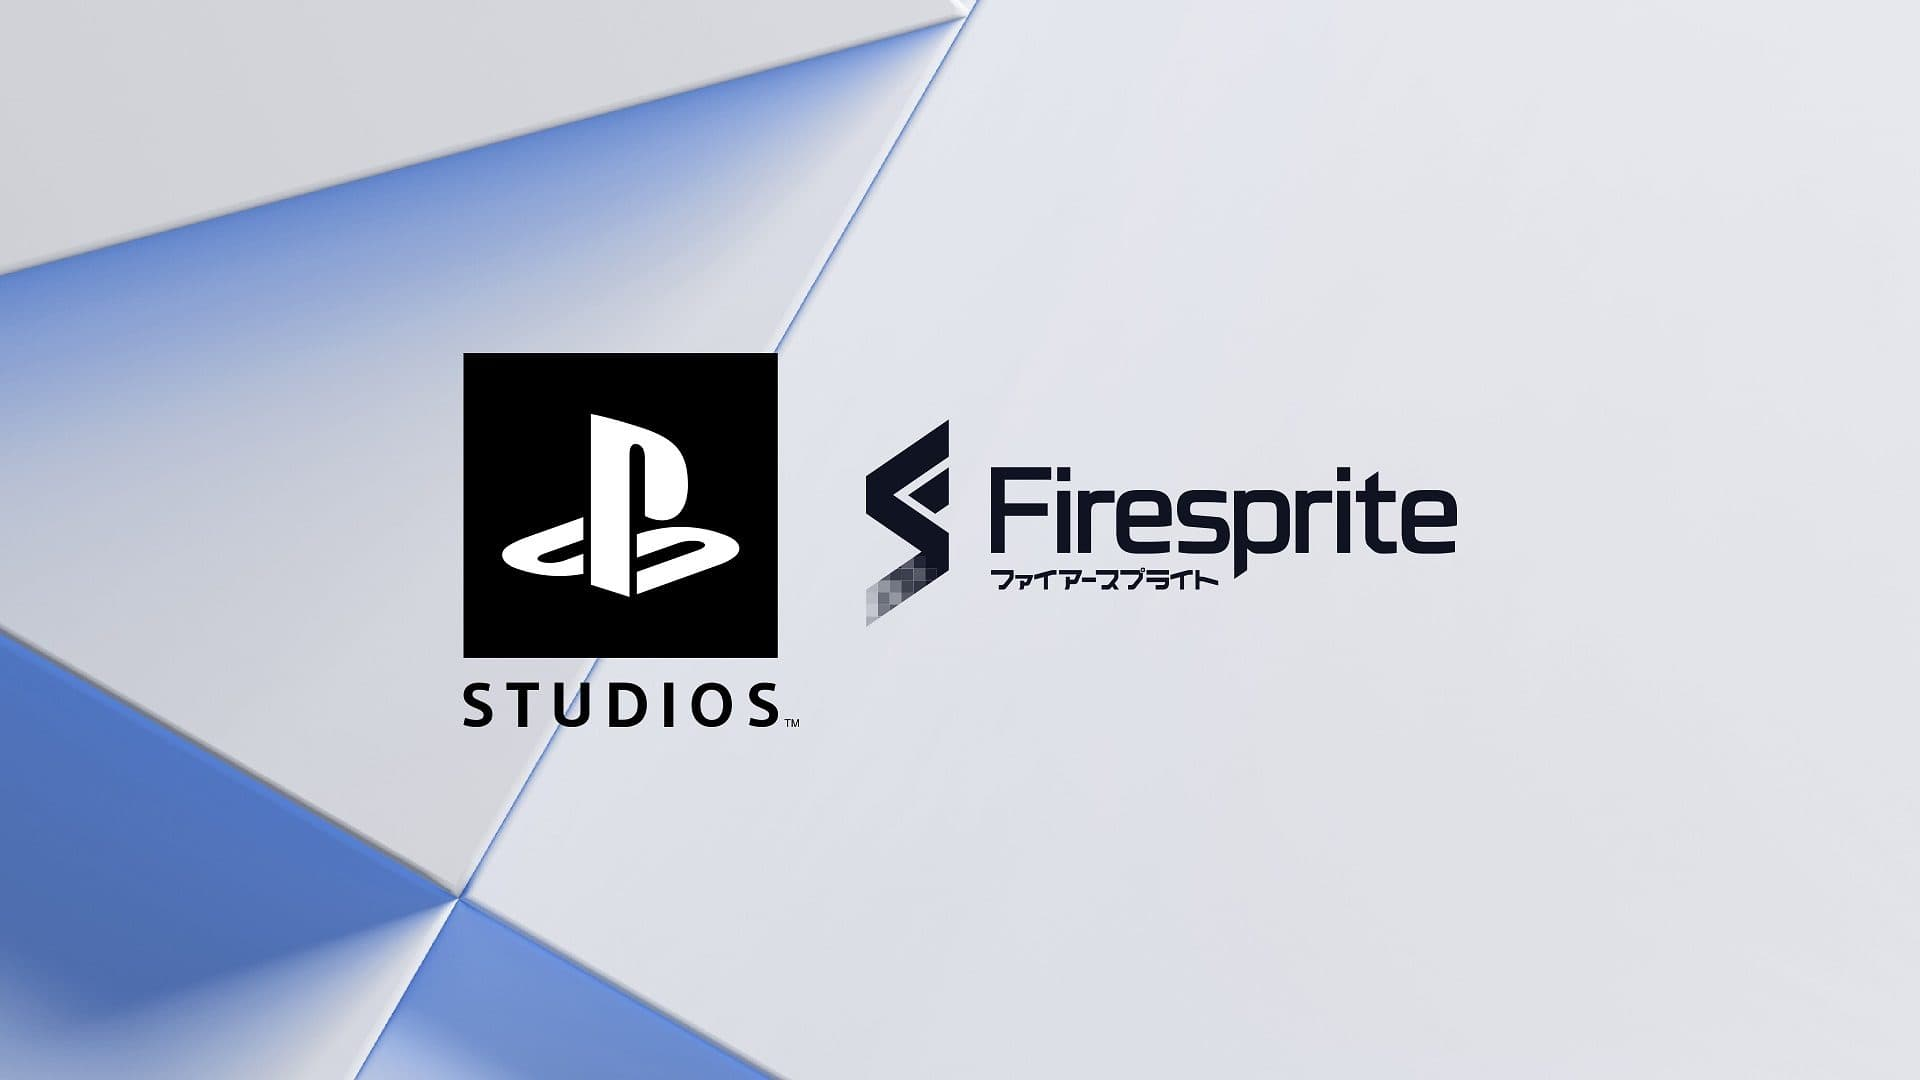 Sony announces that they are buying Firesprite